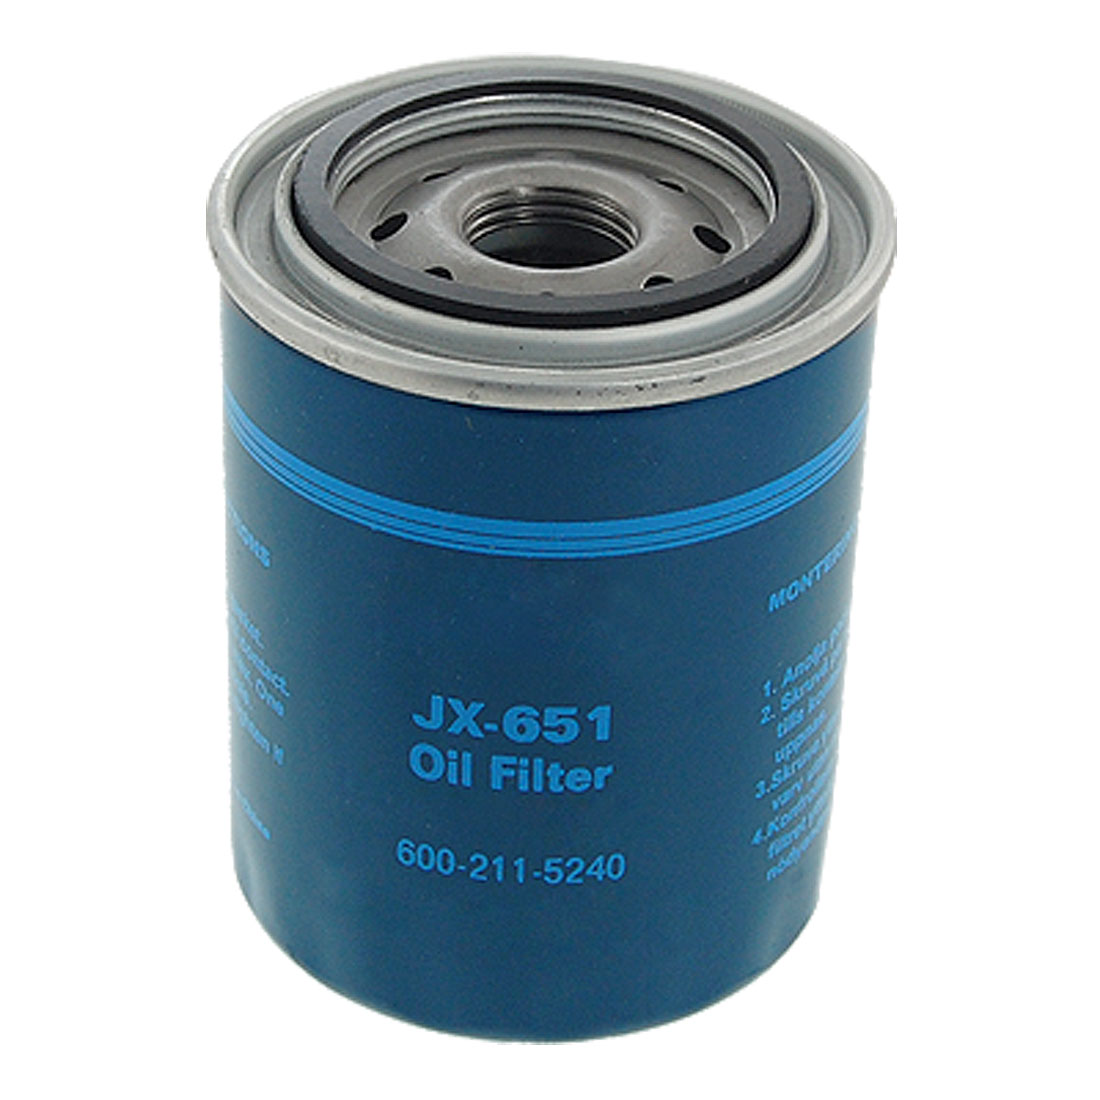 Excavator Replacement Oil Filter for Komatsu Fleetguard